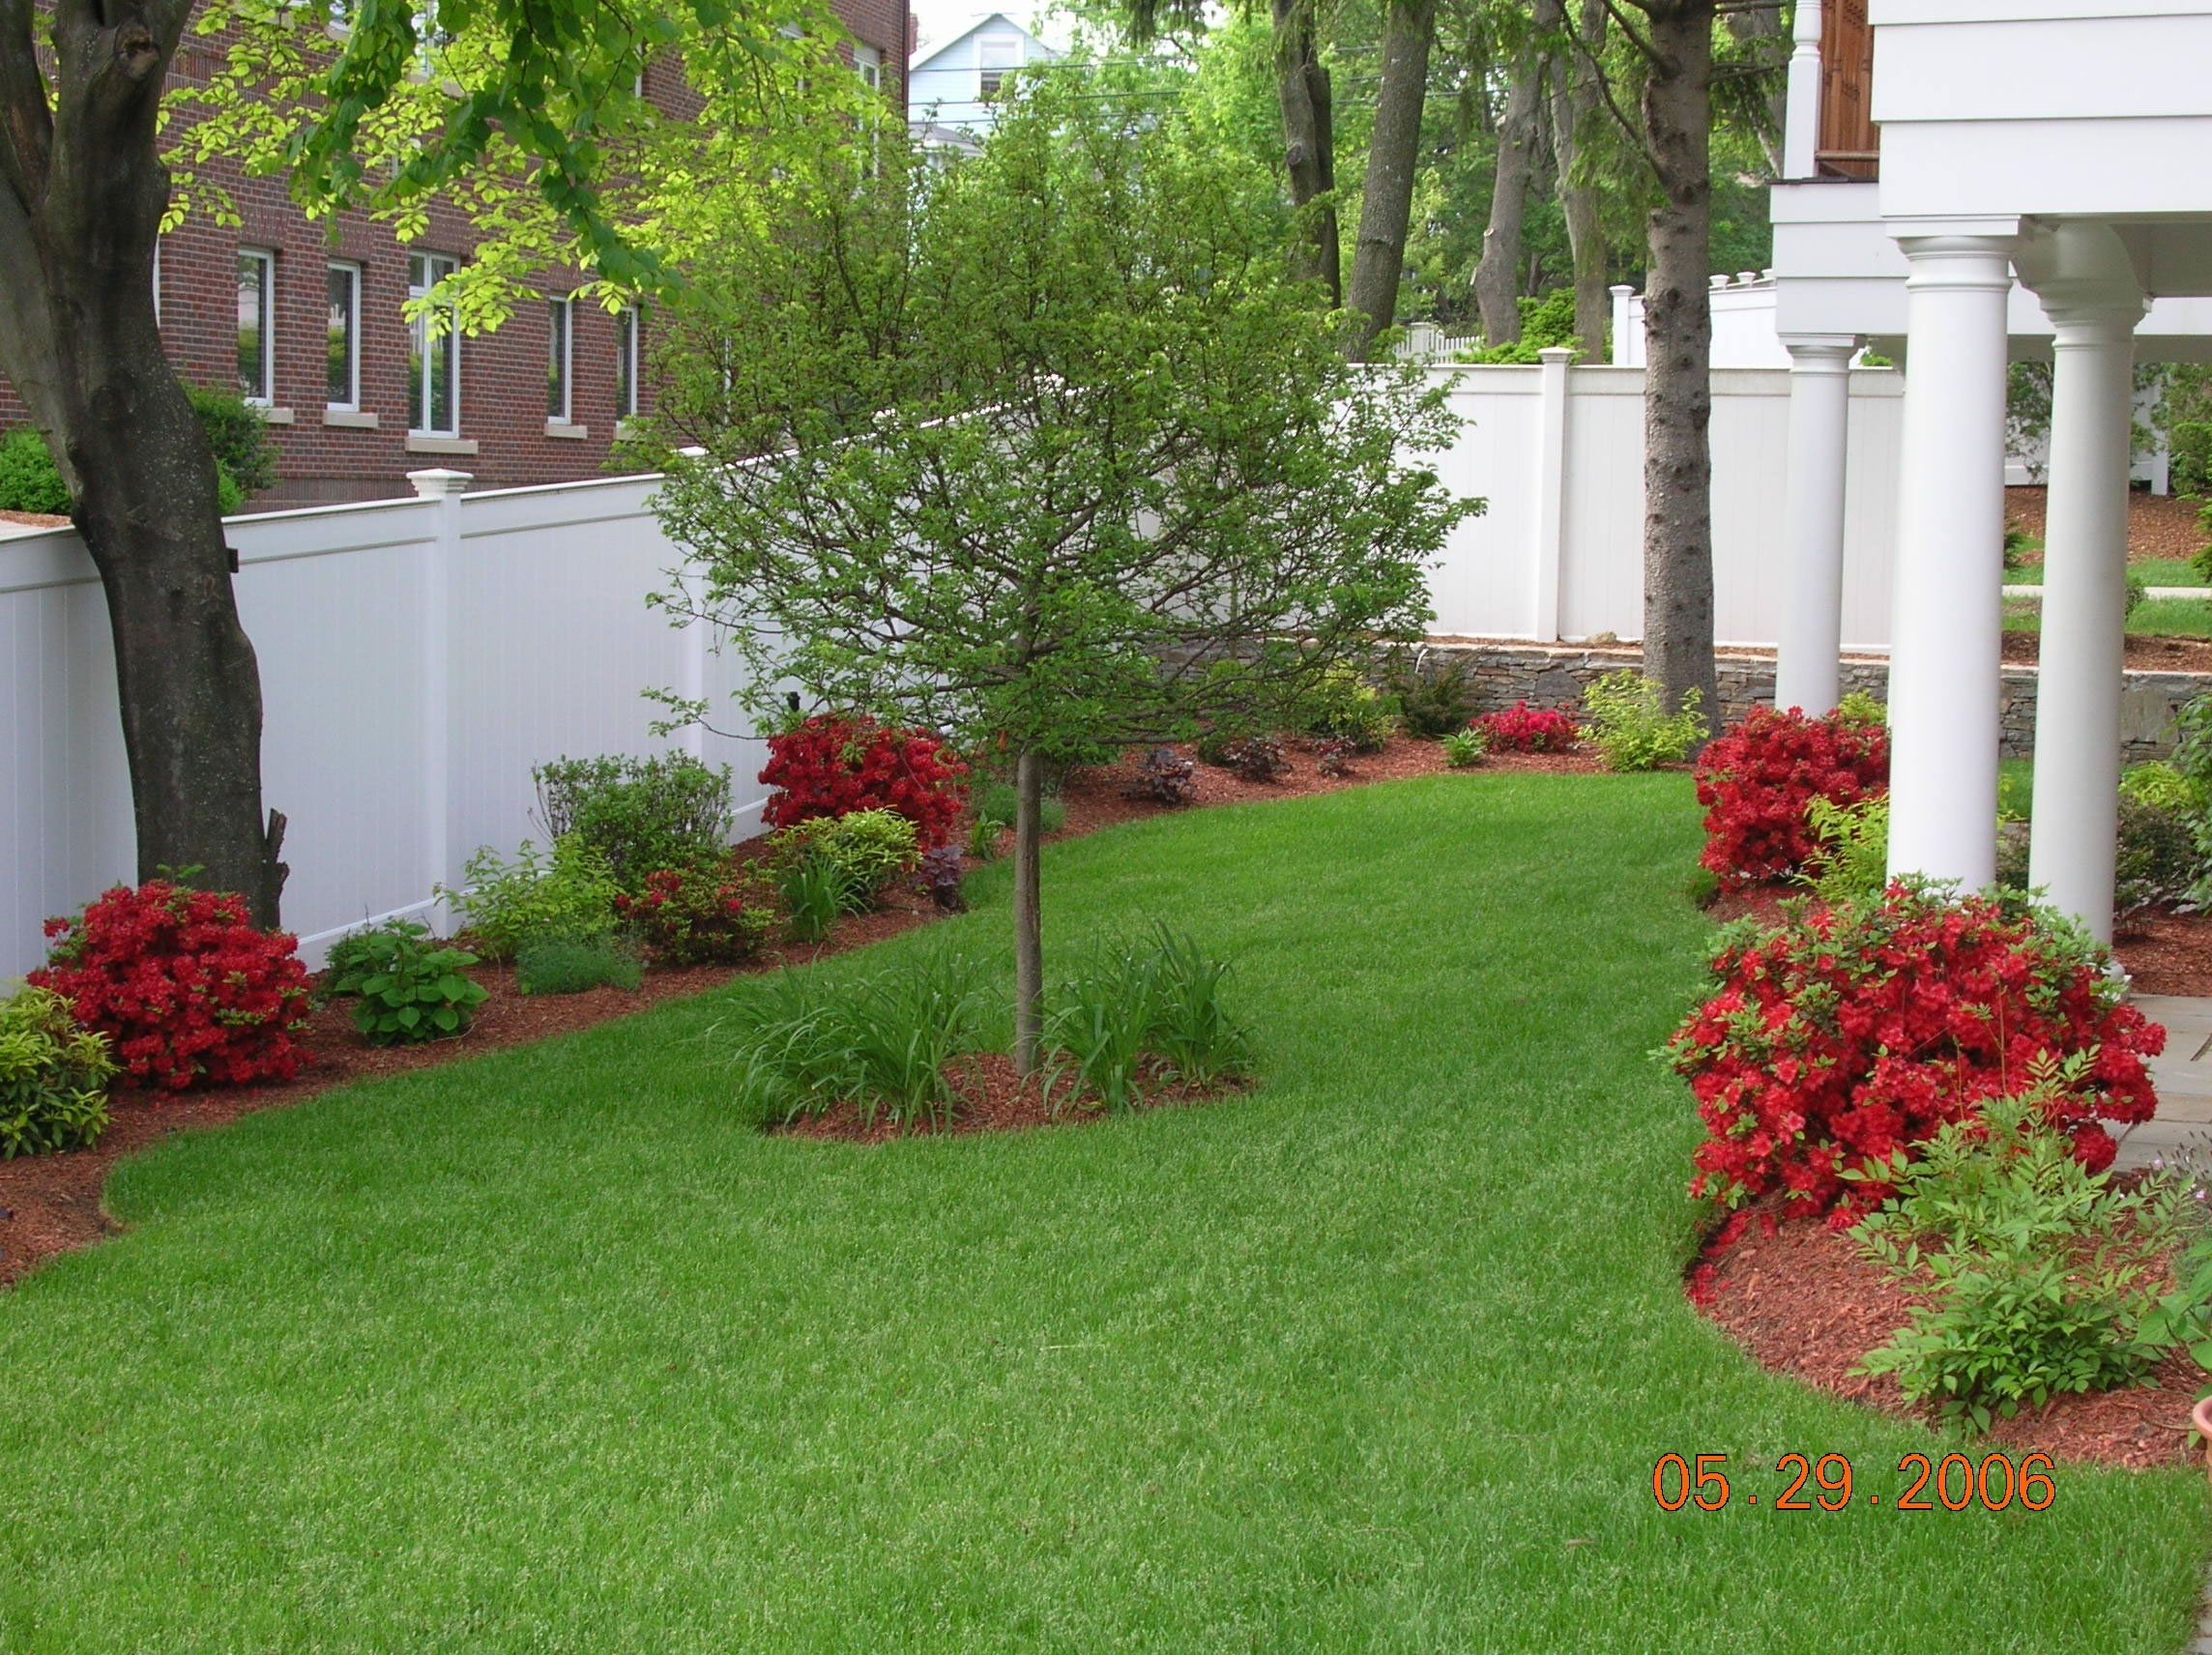 Top 10 simple diy landscaping ideas seek diy for Backyard landscaping ideas